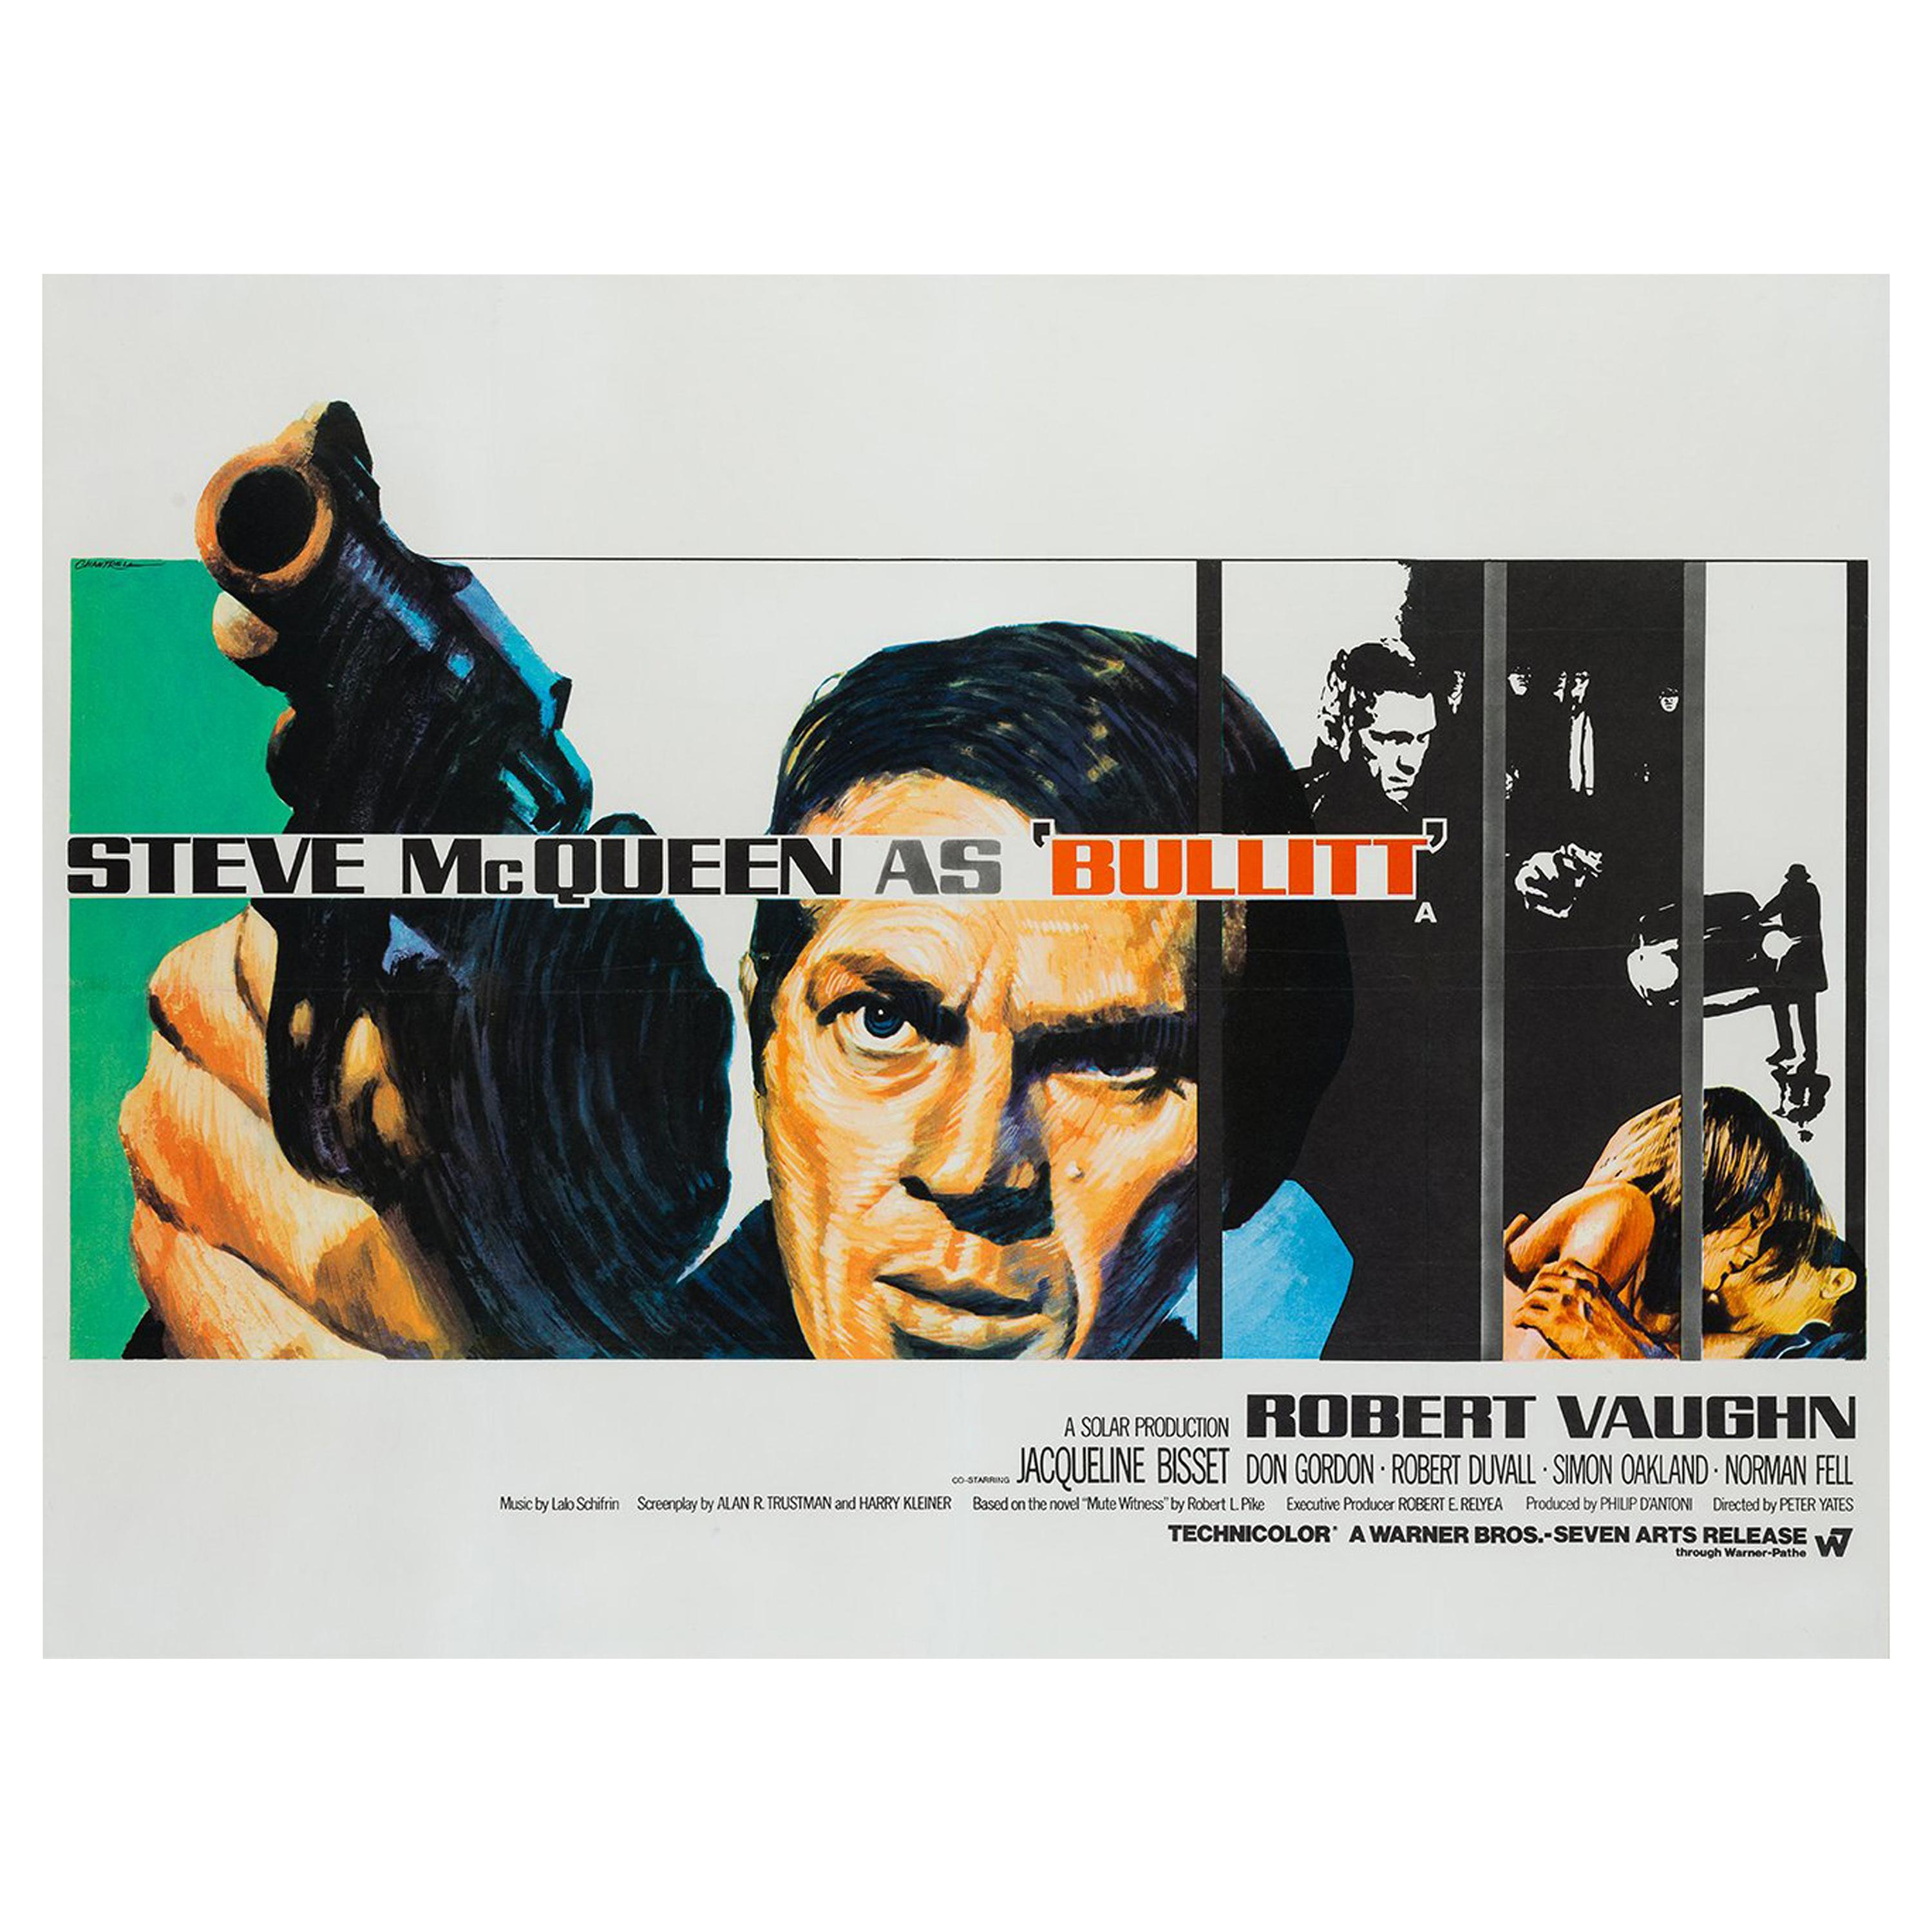 Bullitt Original UK Film Poster, Tom Chantrell, 1968